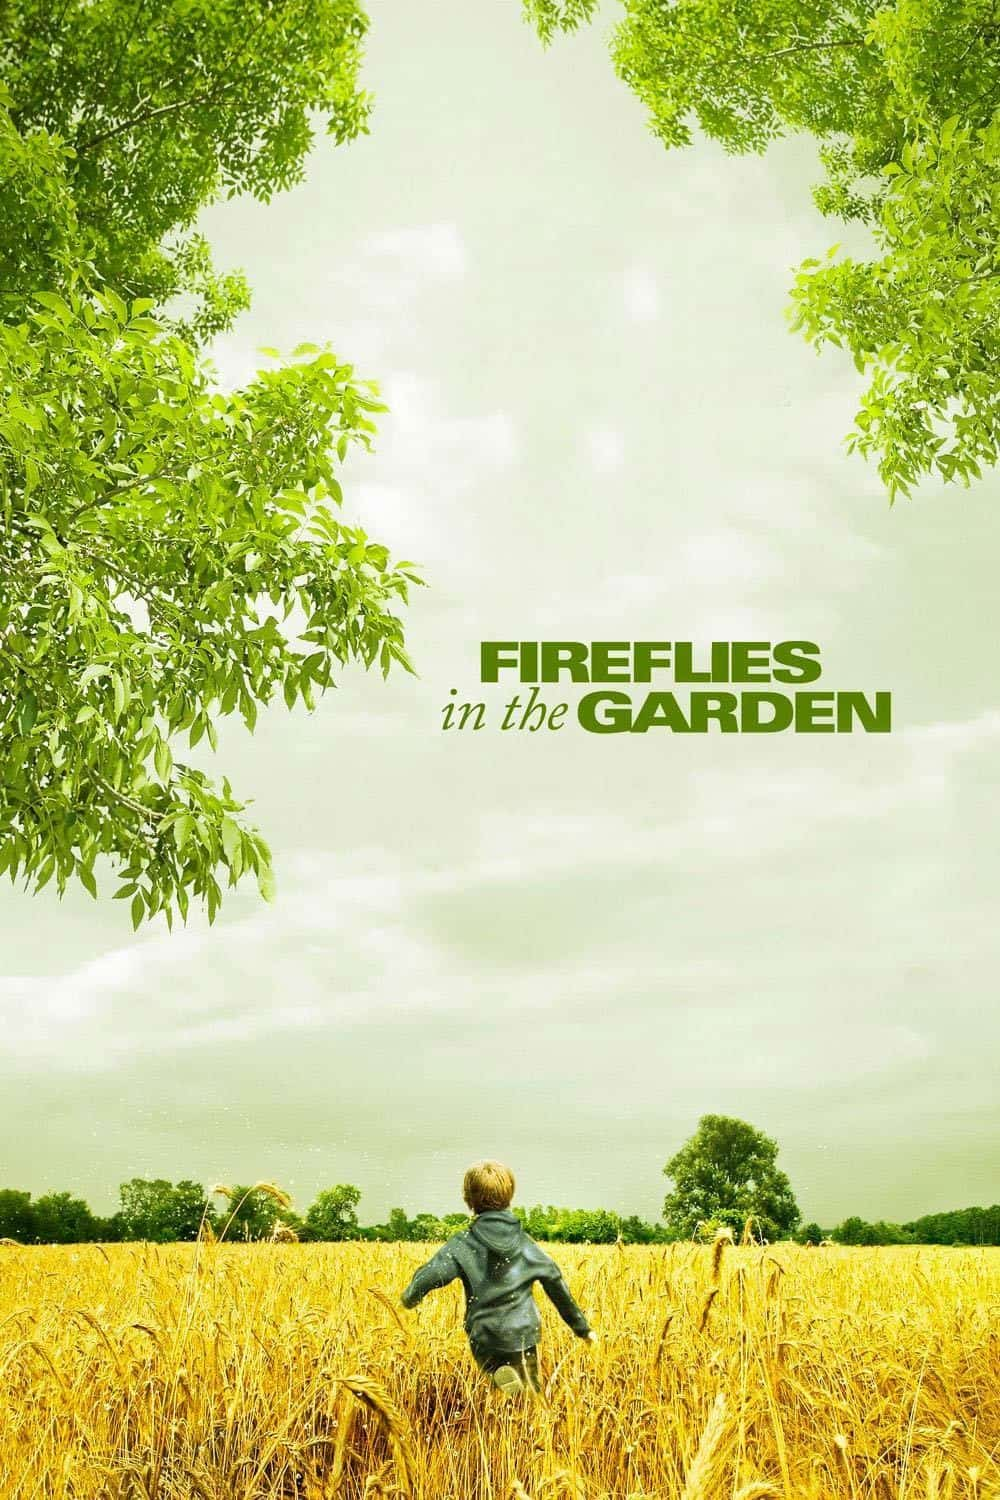 Fireflies in the Garden, 2008